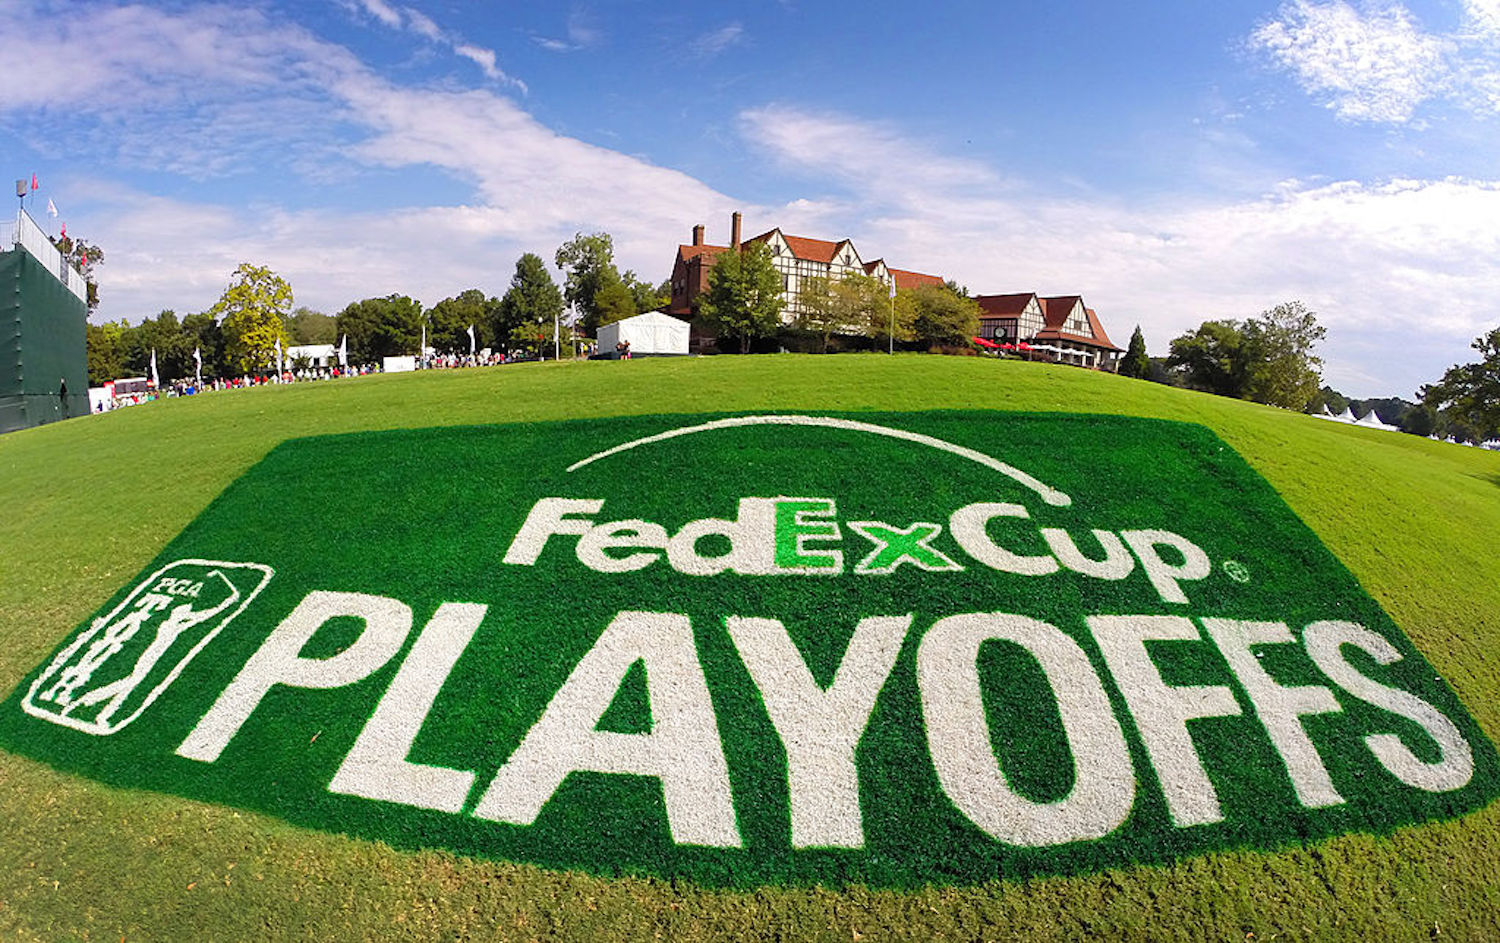 The 125-man field for the 2020 FedEx Cup Playoffs is set. Who's in, who's out, and who has a chance to win the $15 million prize?